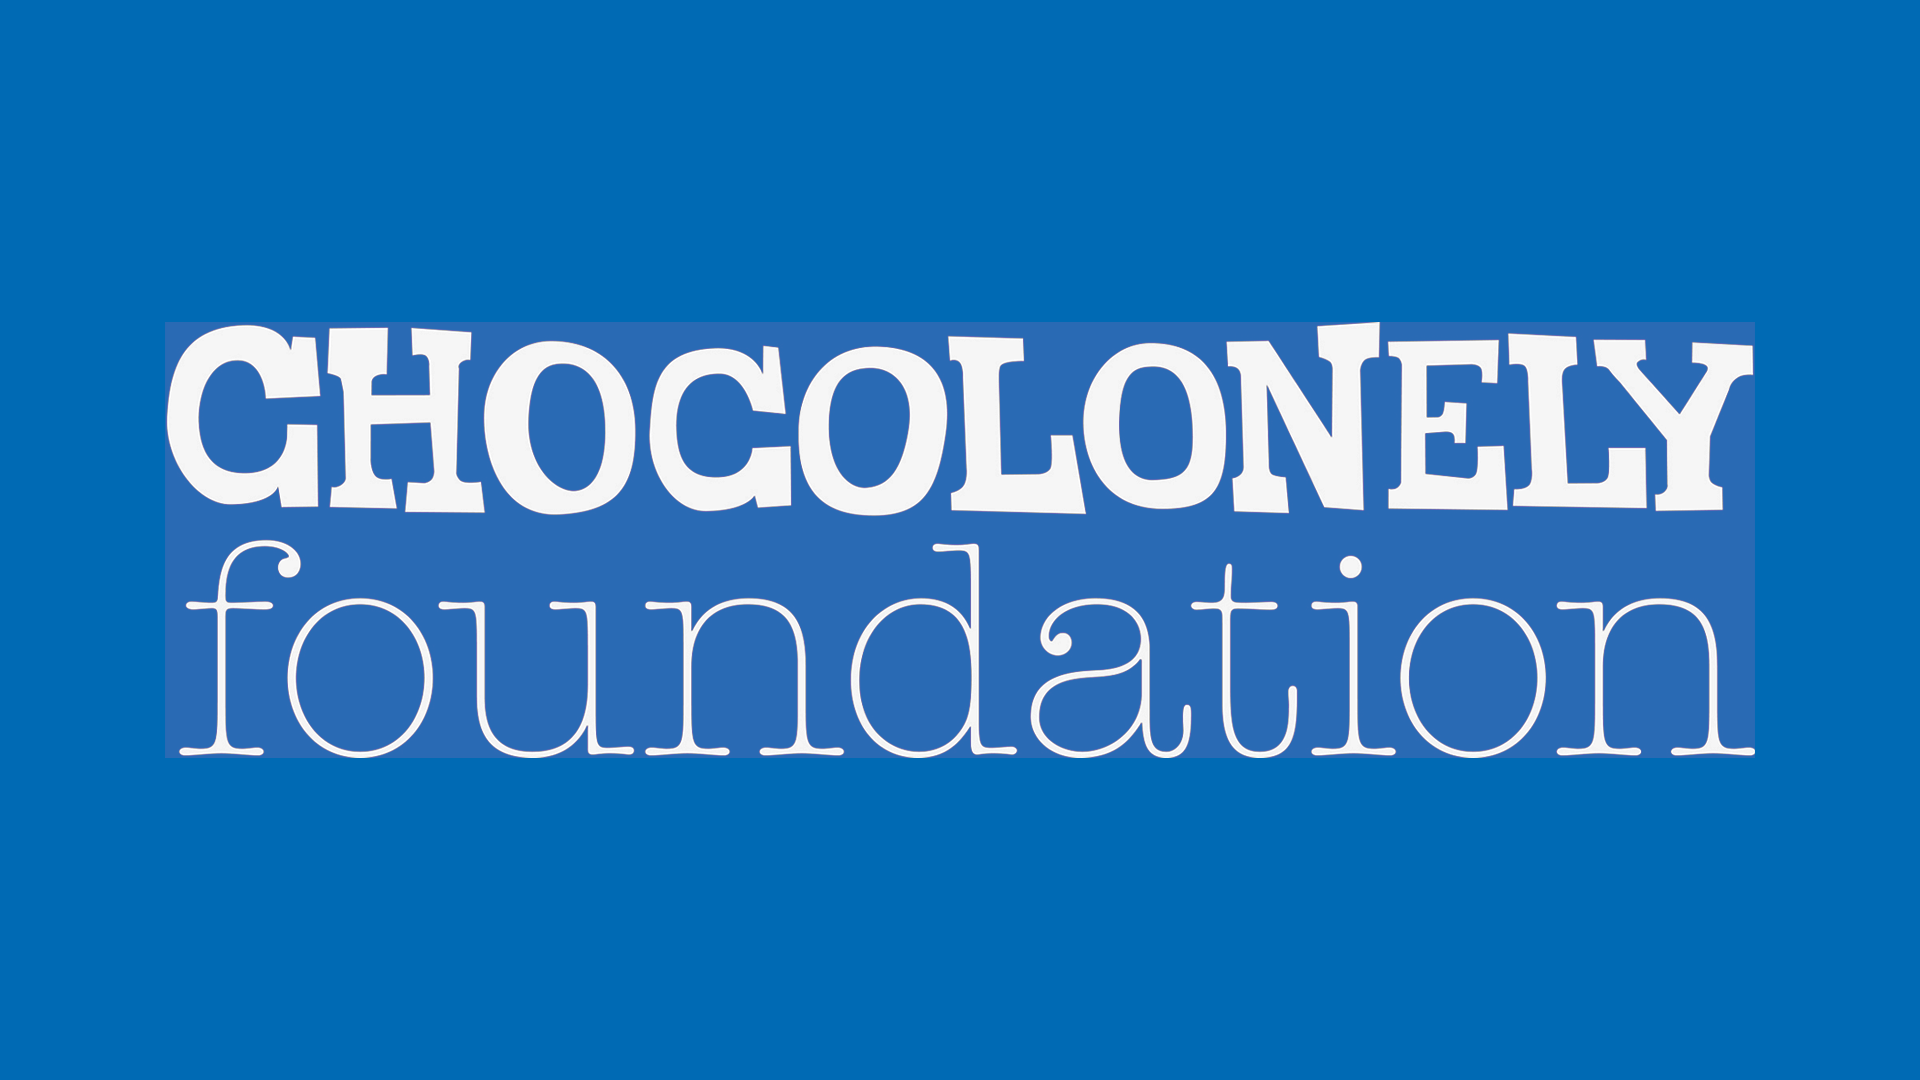 Chocolonely Foundation Logo Wit Op Blauw